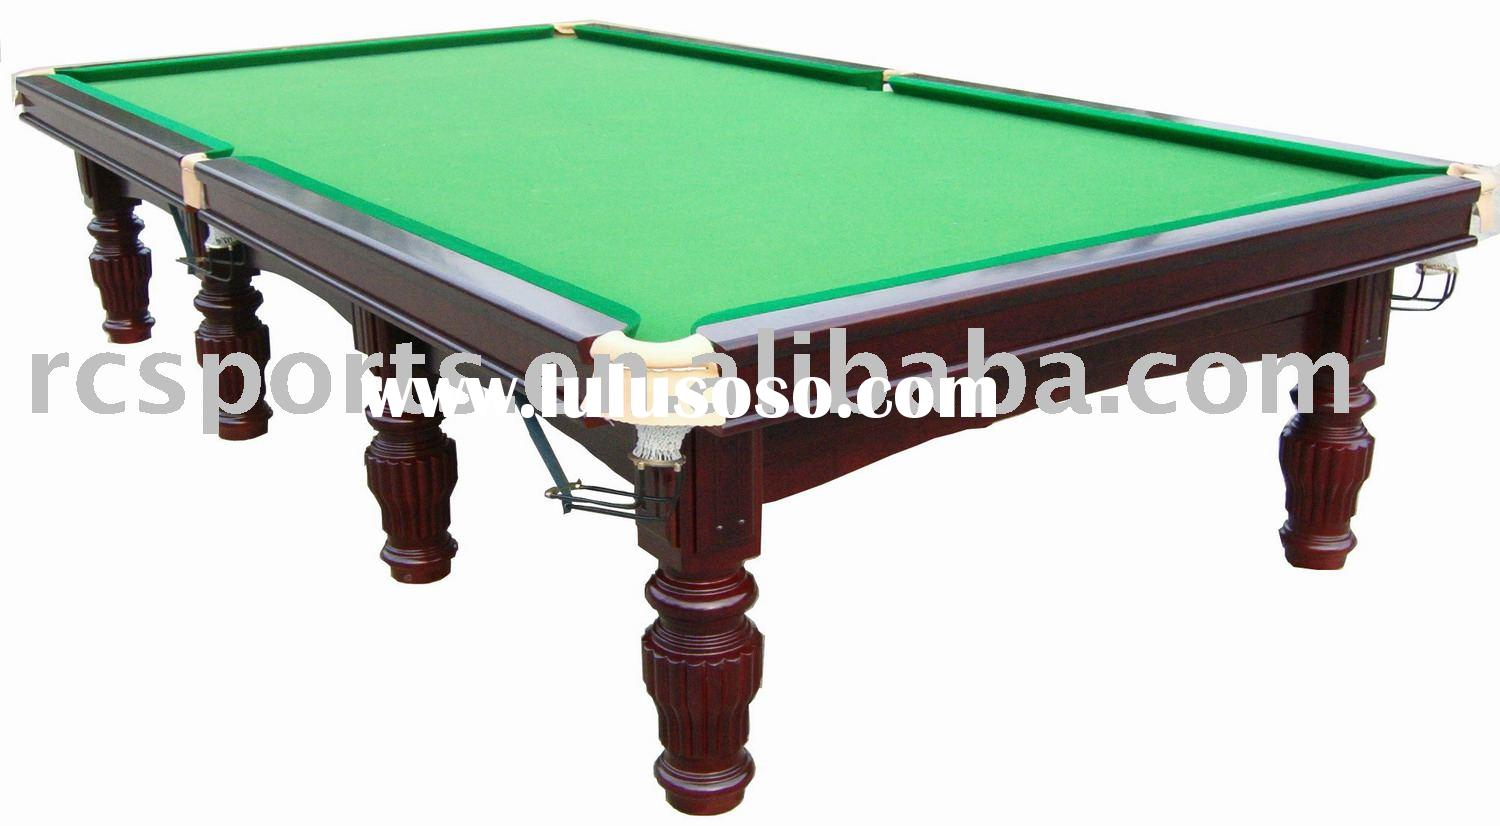 Snooker Table For Sell Price Malaysia